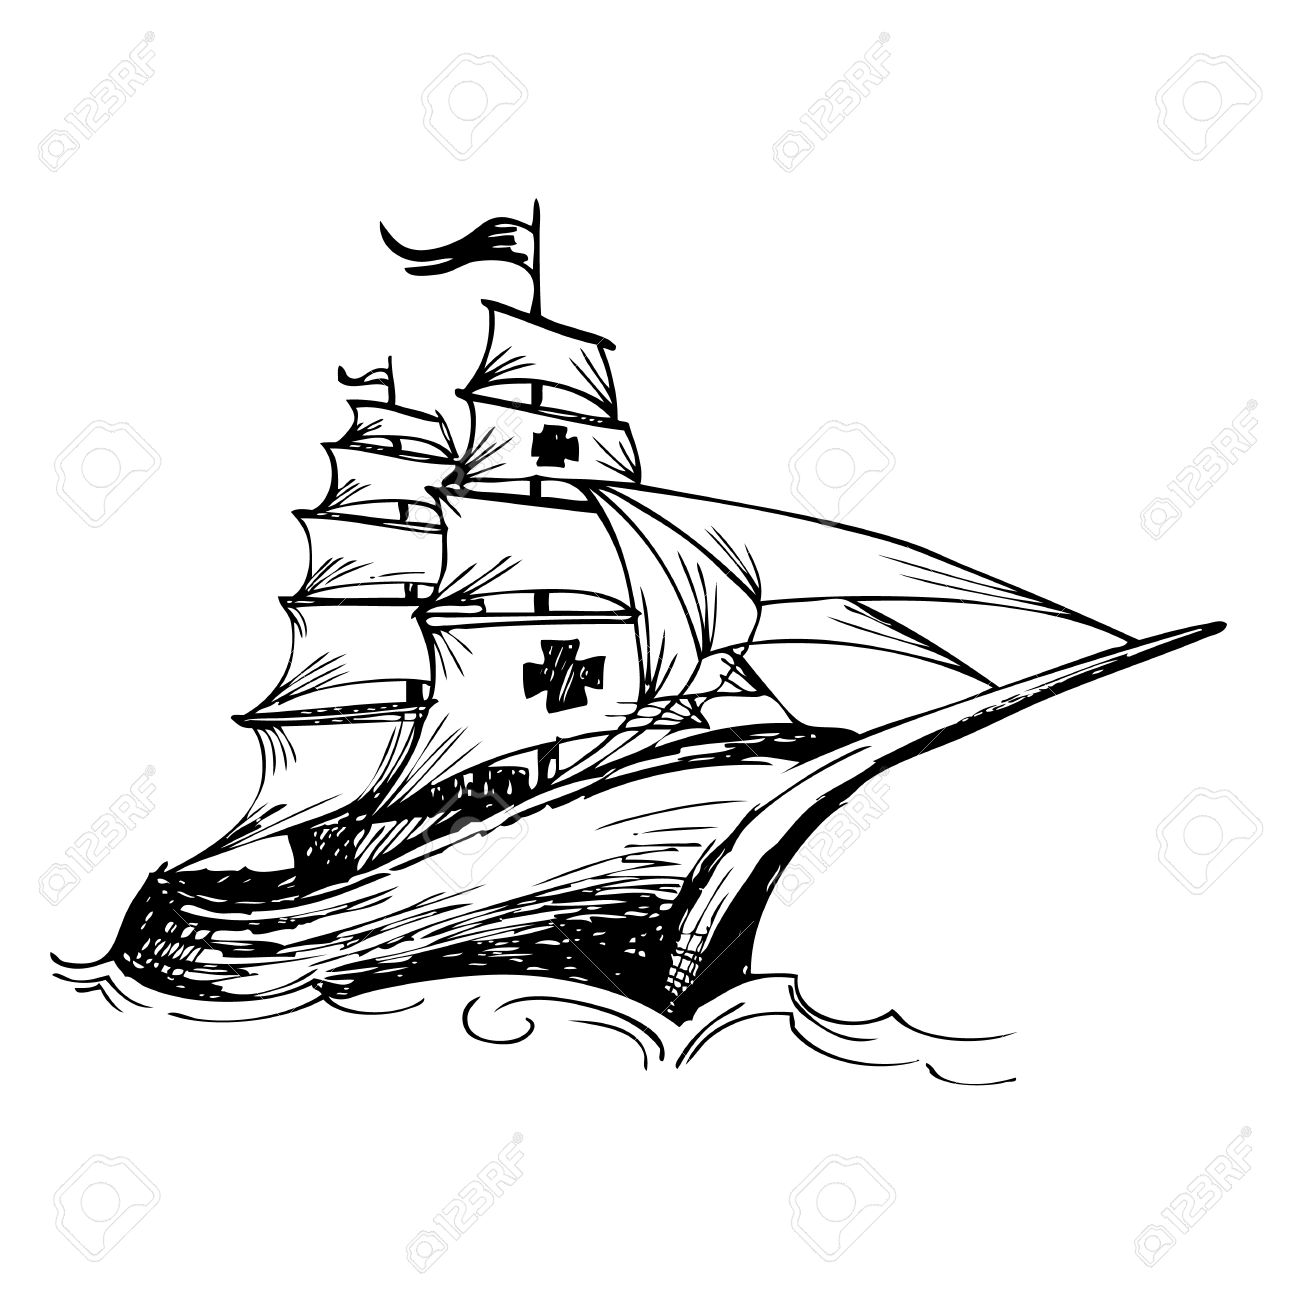 1300x1300 Columbus Ship Hand Drawn By Pencil Made For Columbus Day Royalty